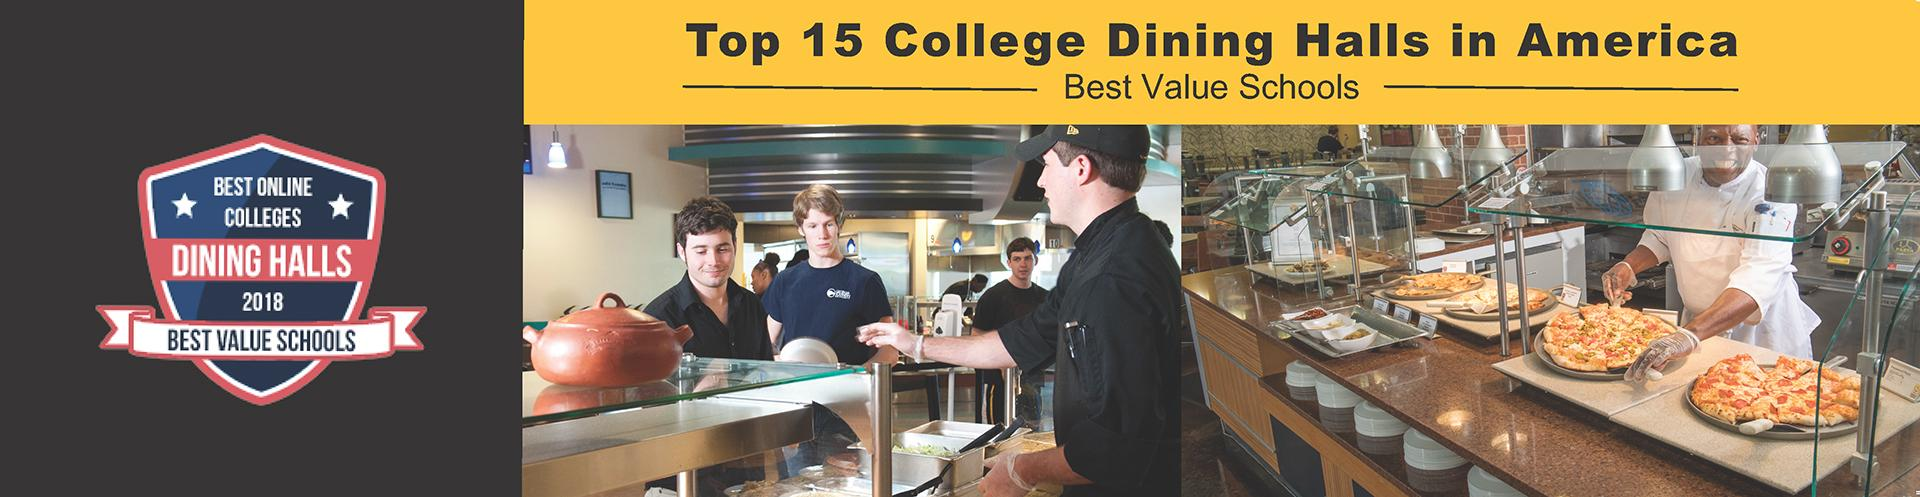 Top 15 College Dining Halls